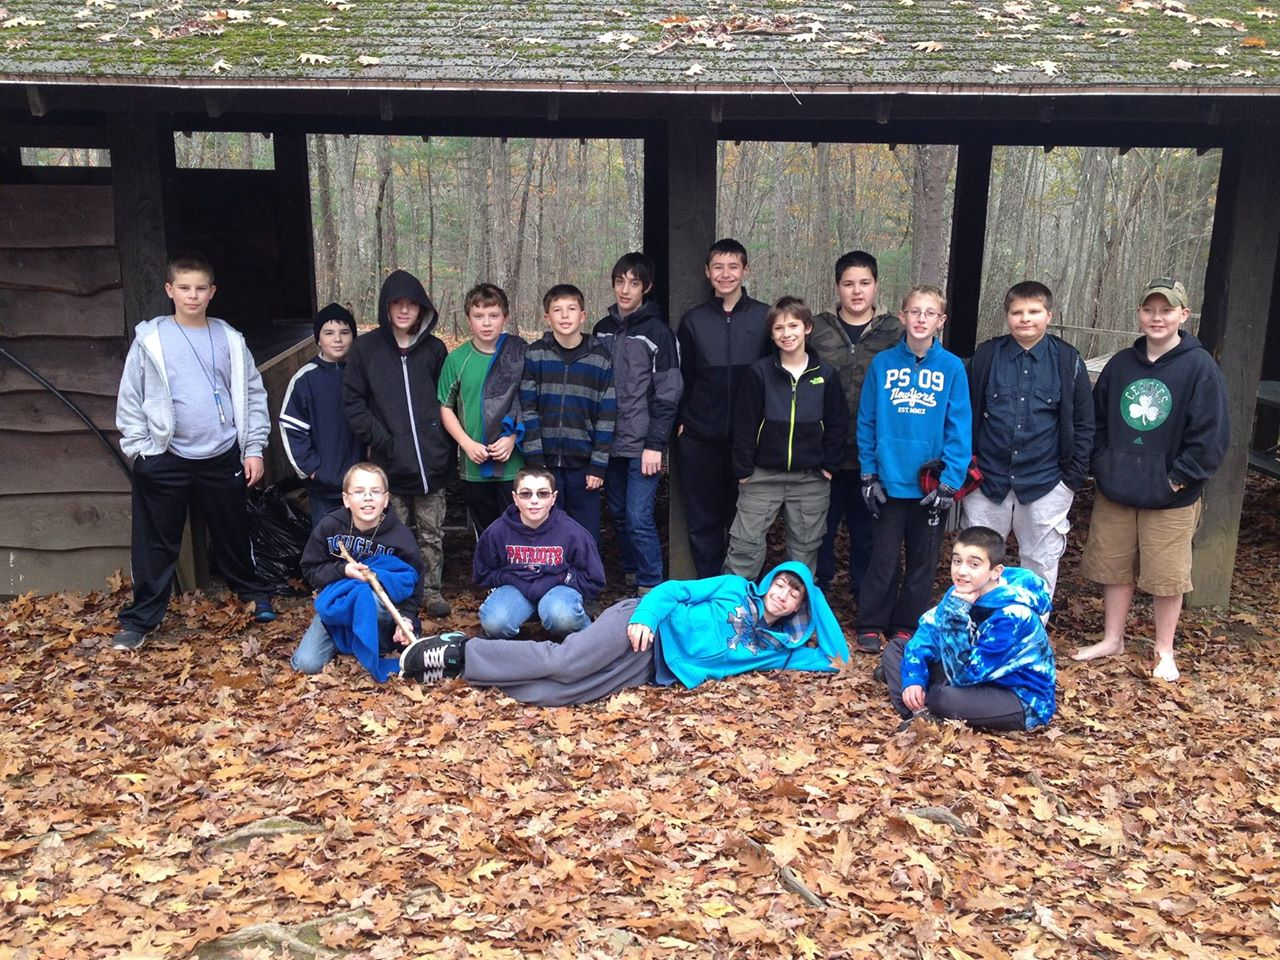 New Douglas Boy Scout Troop 316 Off To A Busy Start